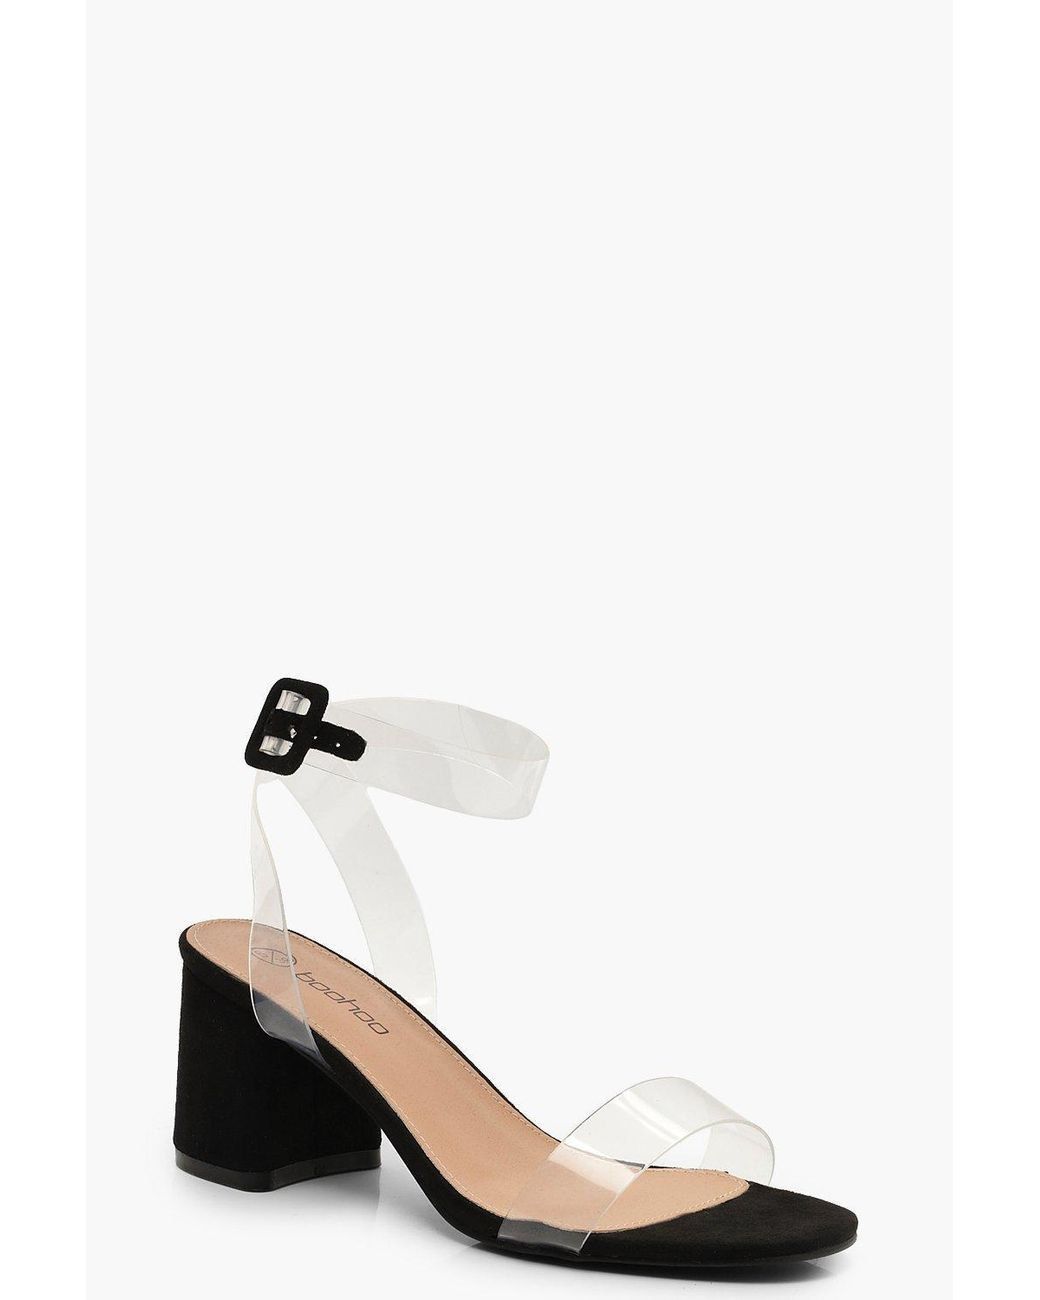 d240c65def Boohoo Wide Fit Clear Strap 2 Part Block Heels in Black - Lyst